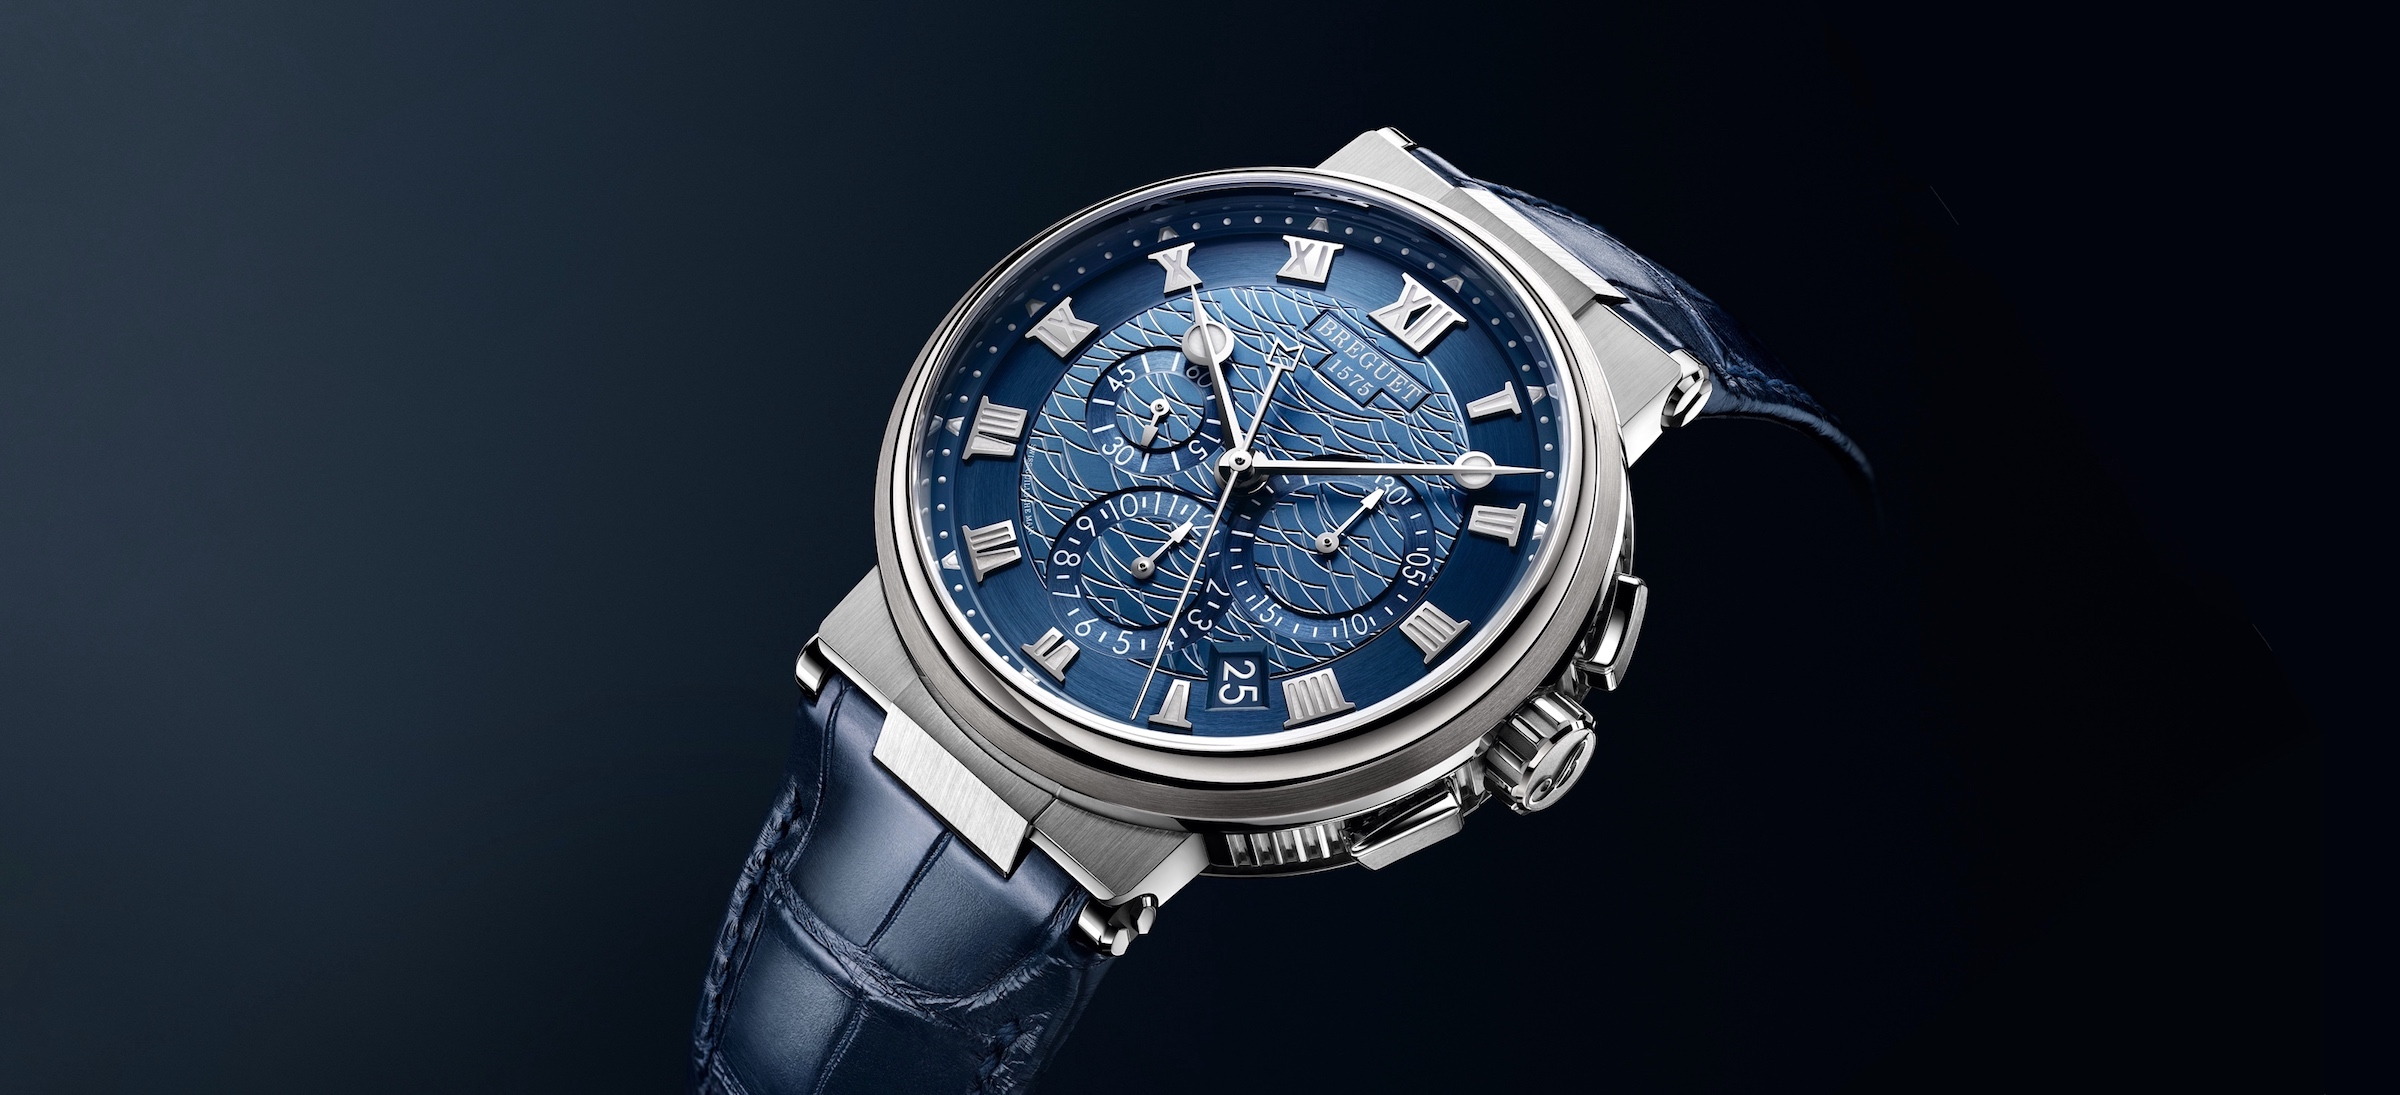 Breguet en Baselworld 2018 - cover